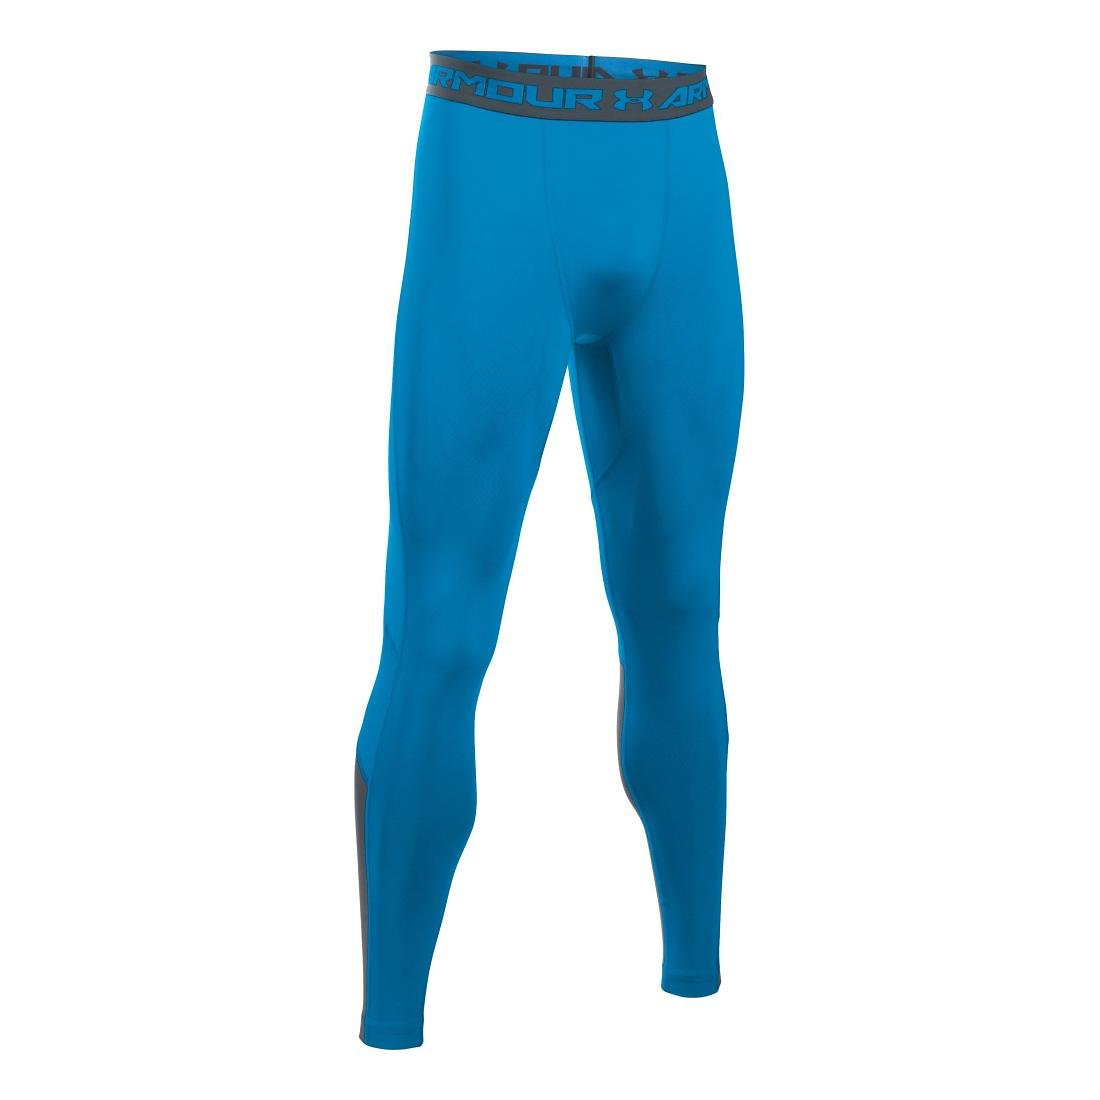 1890d27b6900a Amazon.com: Under Armour Men's Coolswitch Compression Leggings: UNDER ARMOUR:  Clothing